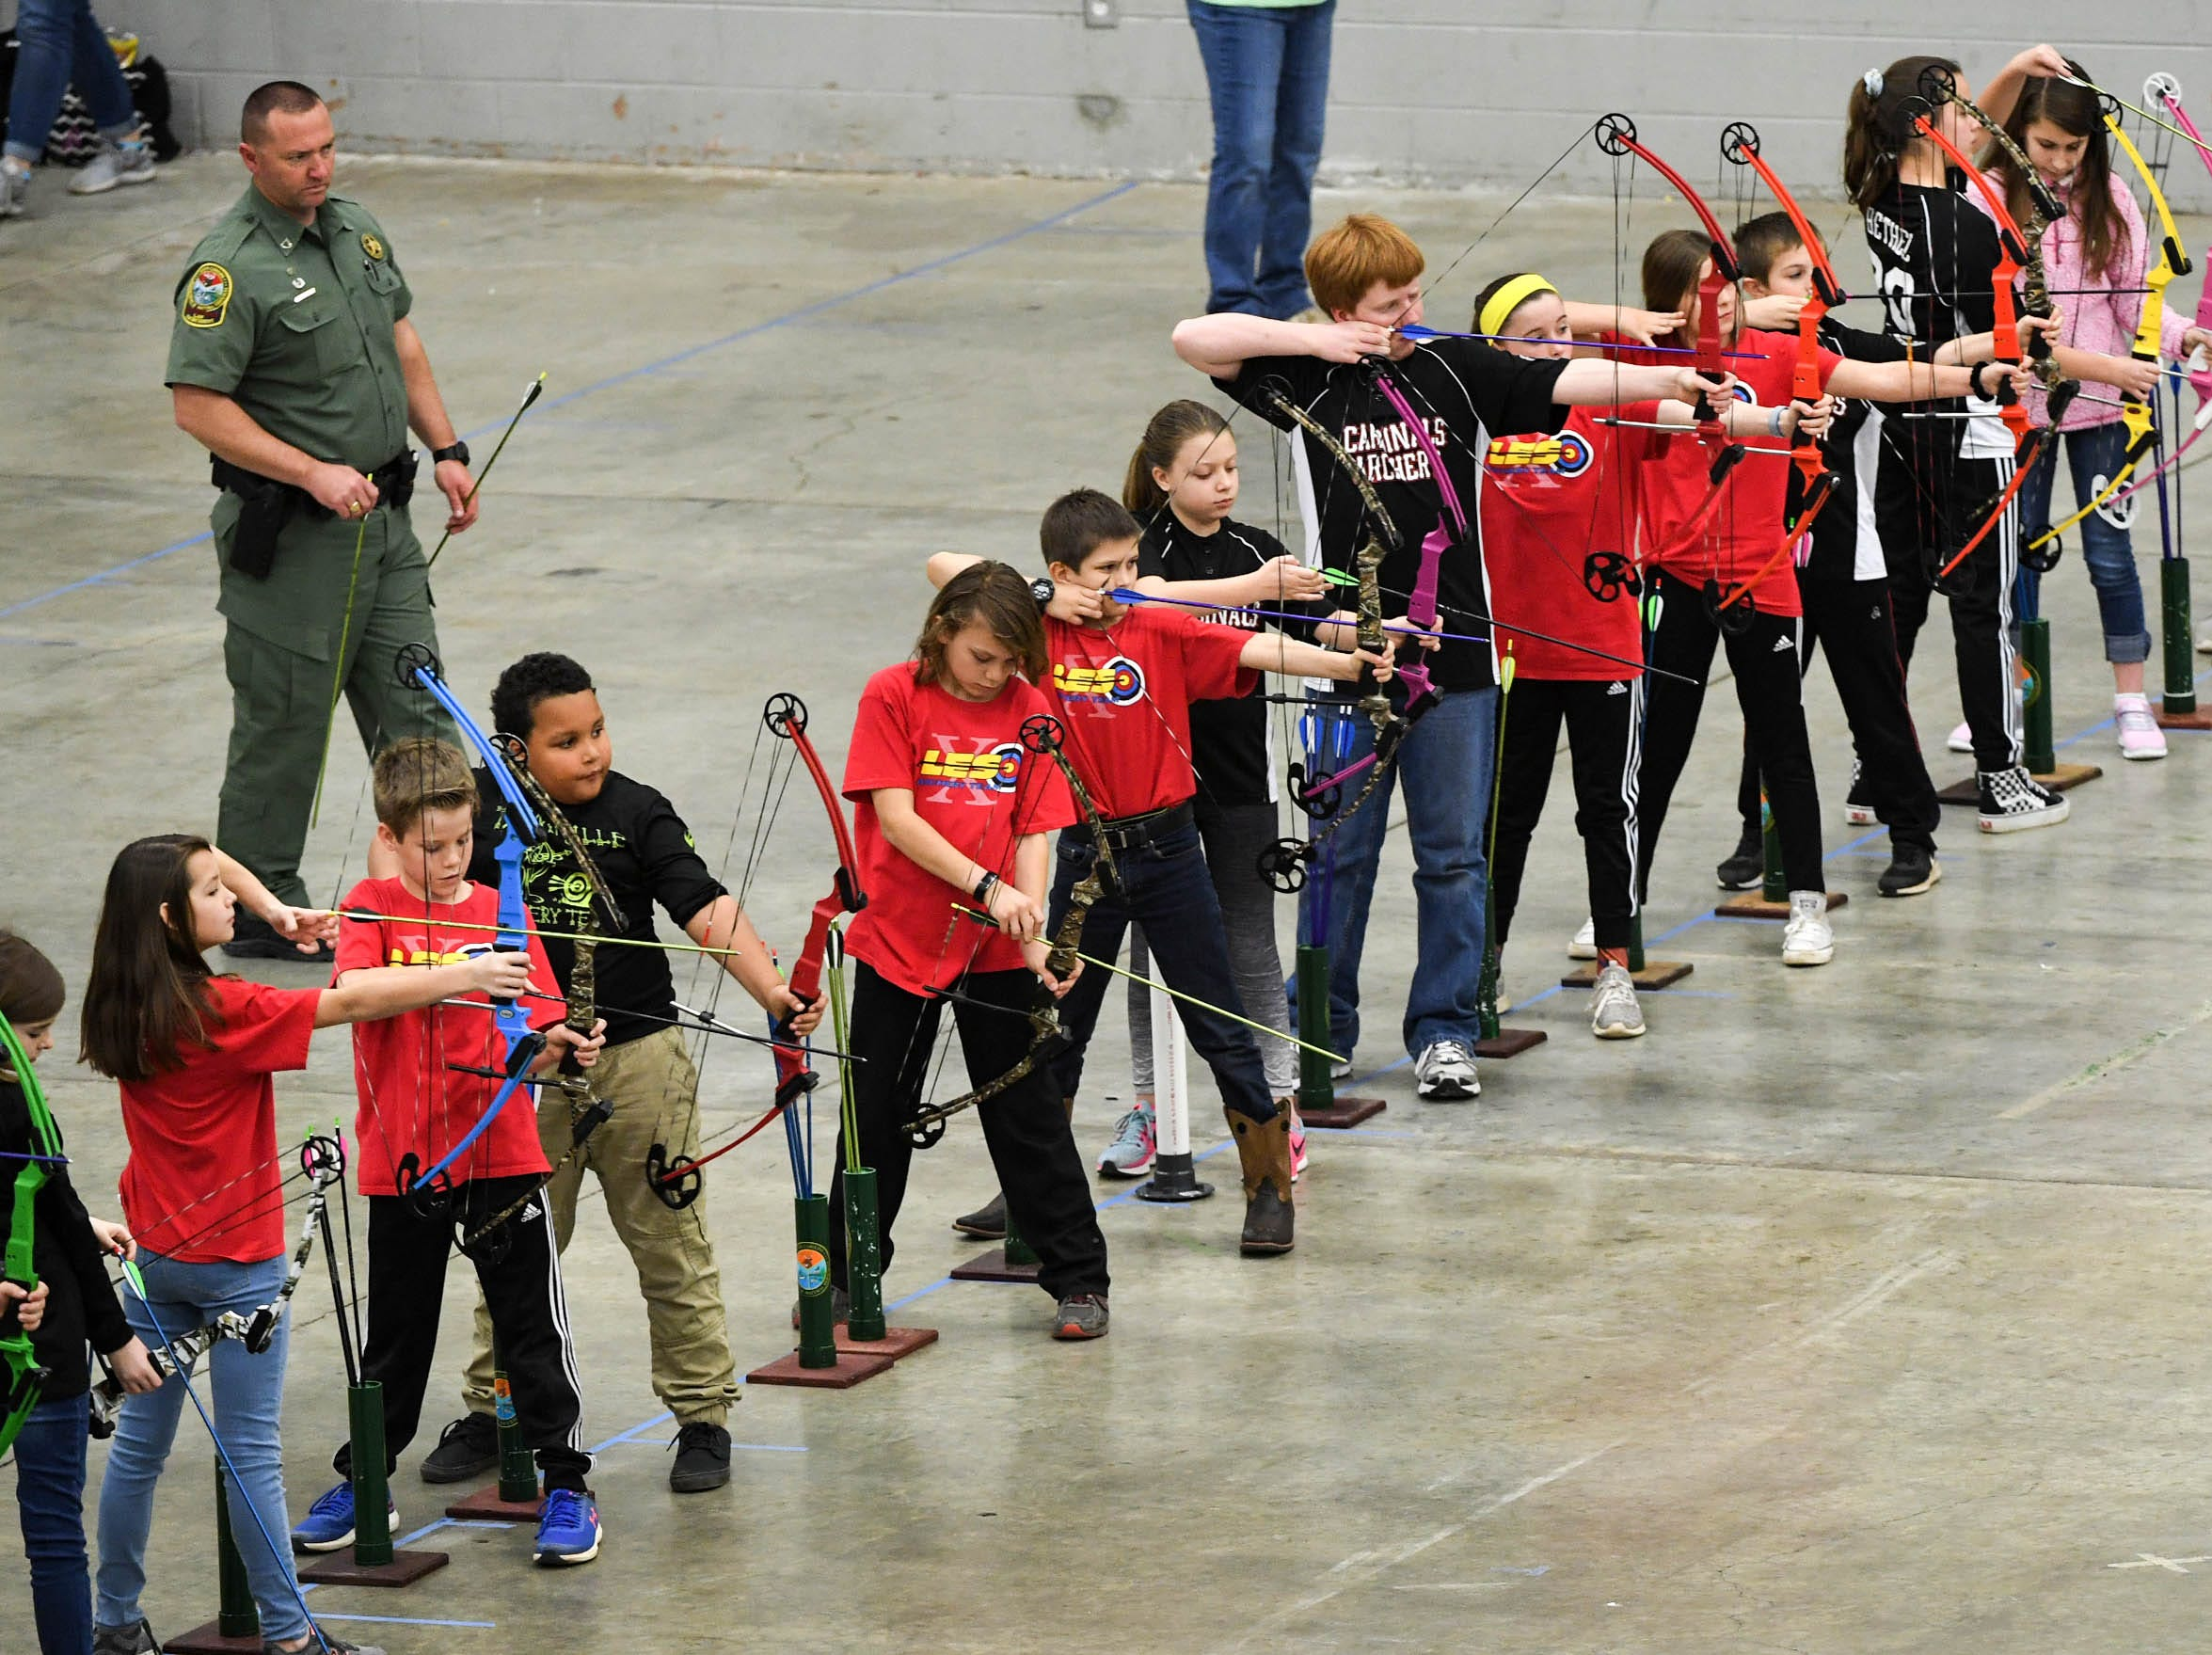 Sfc. Ken Cope watches over students ready to release an arrow during the South Carolina Department of Natural Resources regional National Archery in the Schools Program (NASP) regional competition at the Anderson Civic Center Wednesday.  The program, which awards $50,000 in scholarships to high school seniors, is a joint venture between state departments of Education and Wildlife. The competition in Anderson, leading up to the state finals March 26-28 in Sumter, had 950 children from 14 elementary and 23 high schools around the state. Pendelton High School finished first in the IBO competition and second in the bullseye for the high school division, Riverside Middle School in Pendleton finished first in the IBO and bullseye competitions for middle schools, and LaFrance Elementary team finished first.